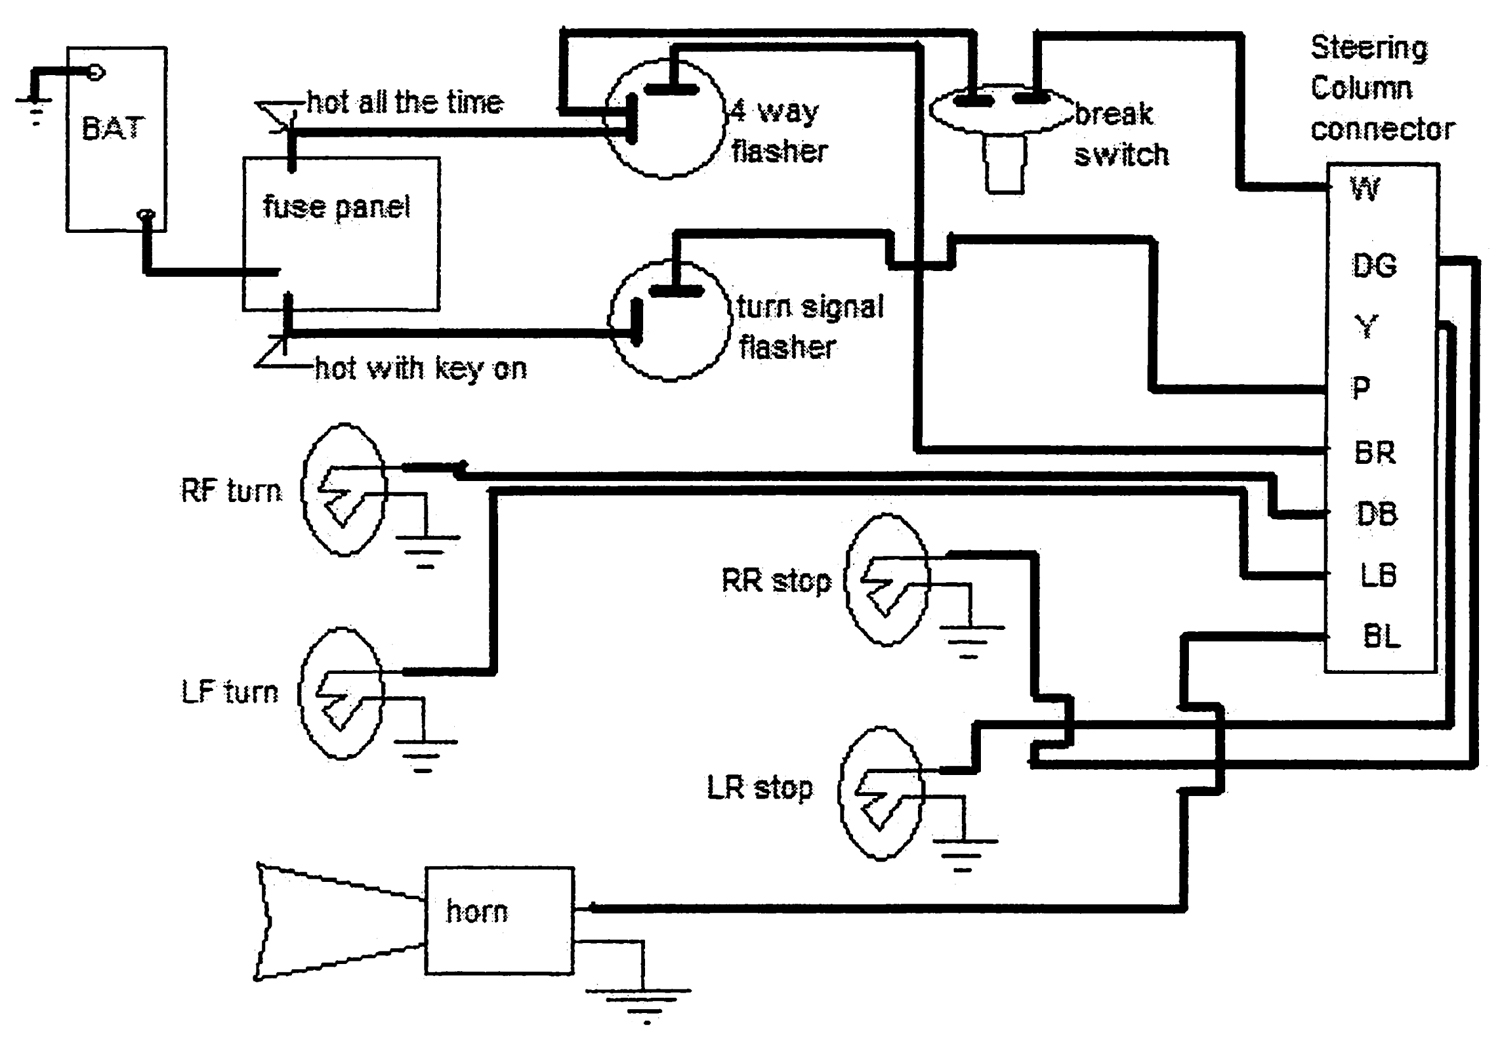 hot tube wire diagram